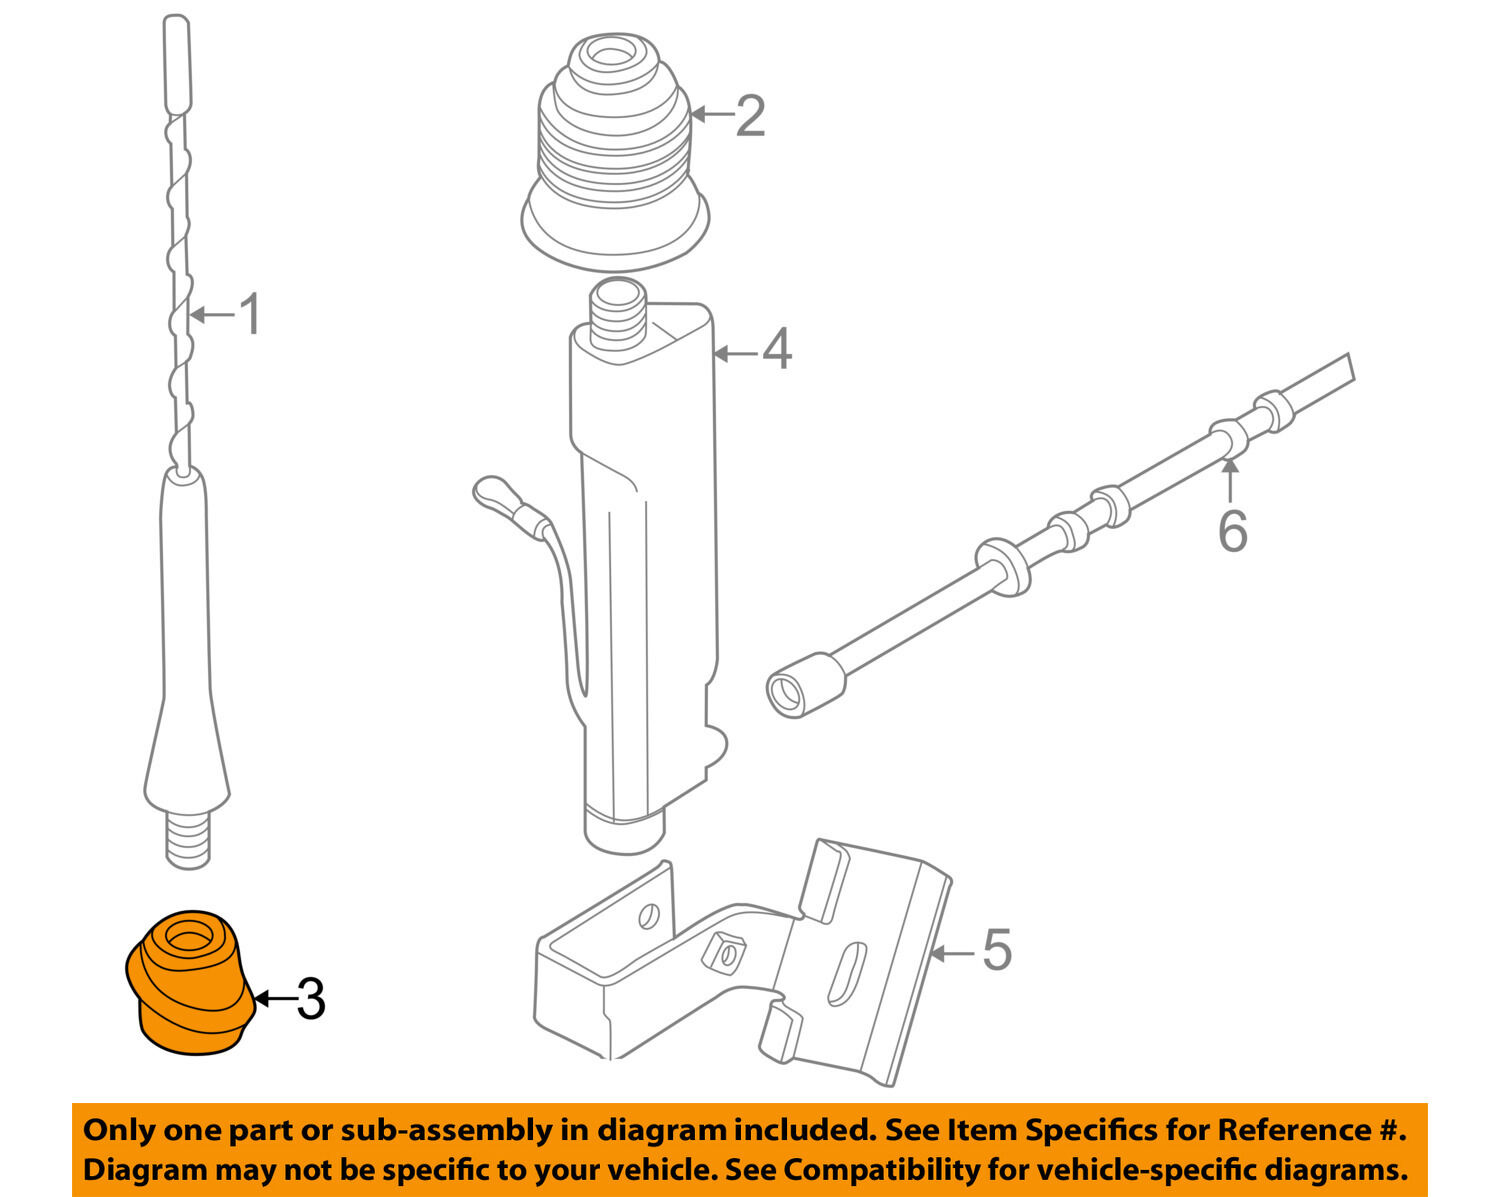 Bmw Oem 96 99 Z3 Antenna Mast Base 65218389698 1596 Picclick 2012 Dodge Ram Diagram 1 Of 2only 0 Available